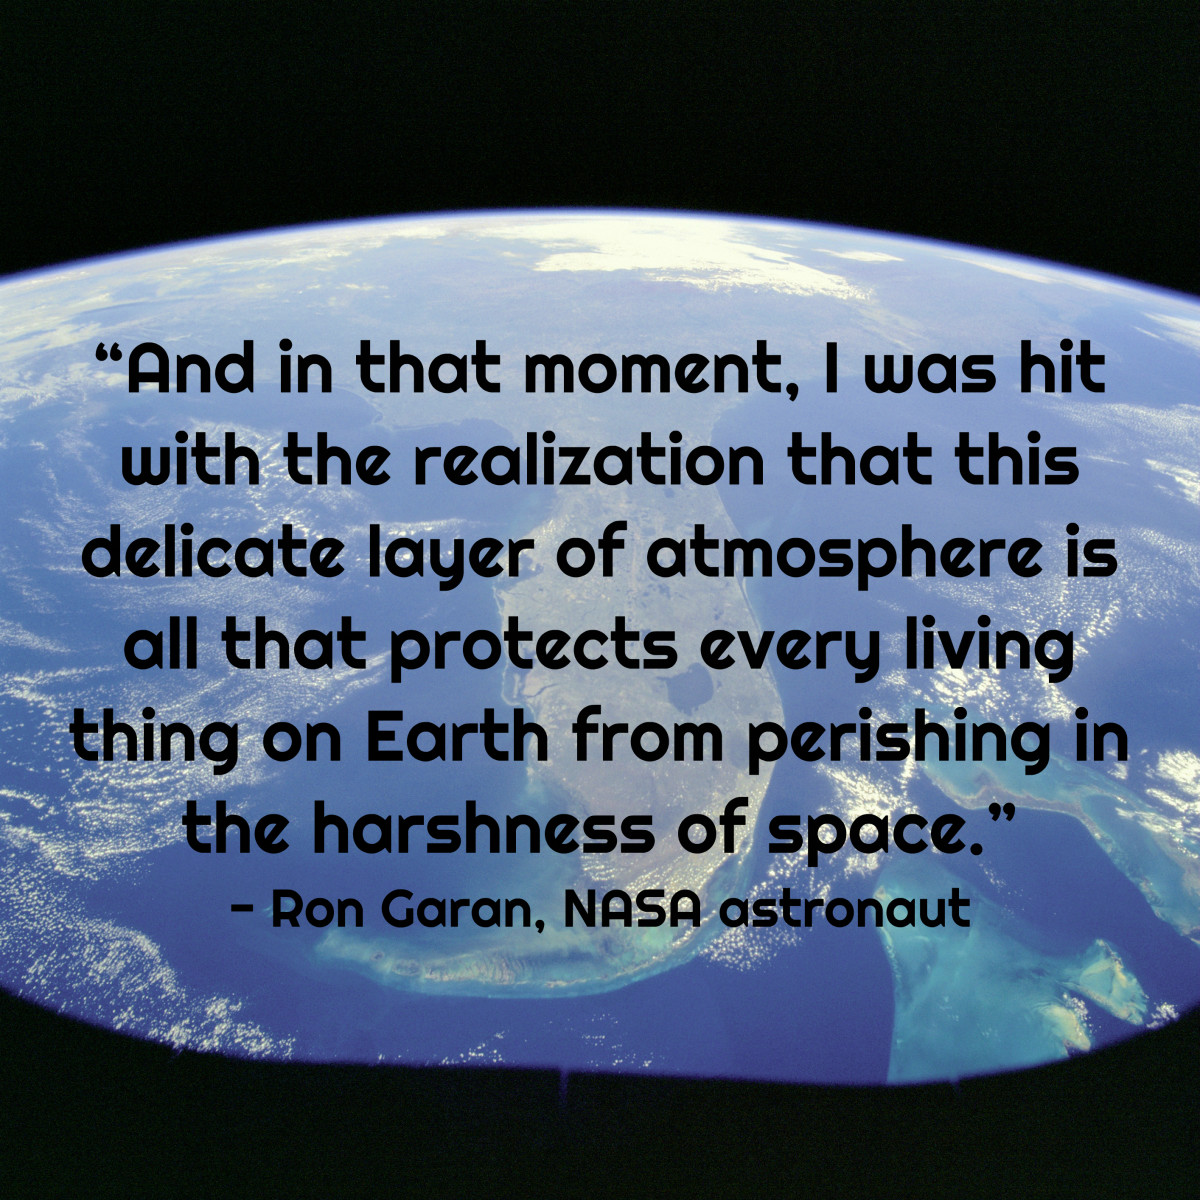 """And in that moment, I was hit with the realization that this delicate layer of atmosphere is all that protects every living thing on Earth from perishing in the harshness of space."" - Ron Garan, NASA astronaut"